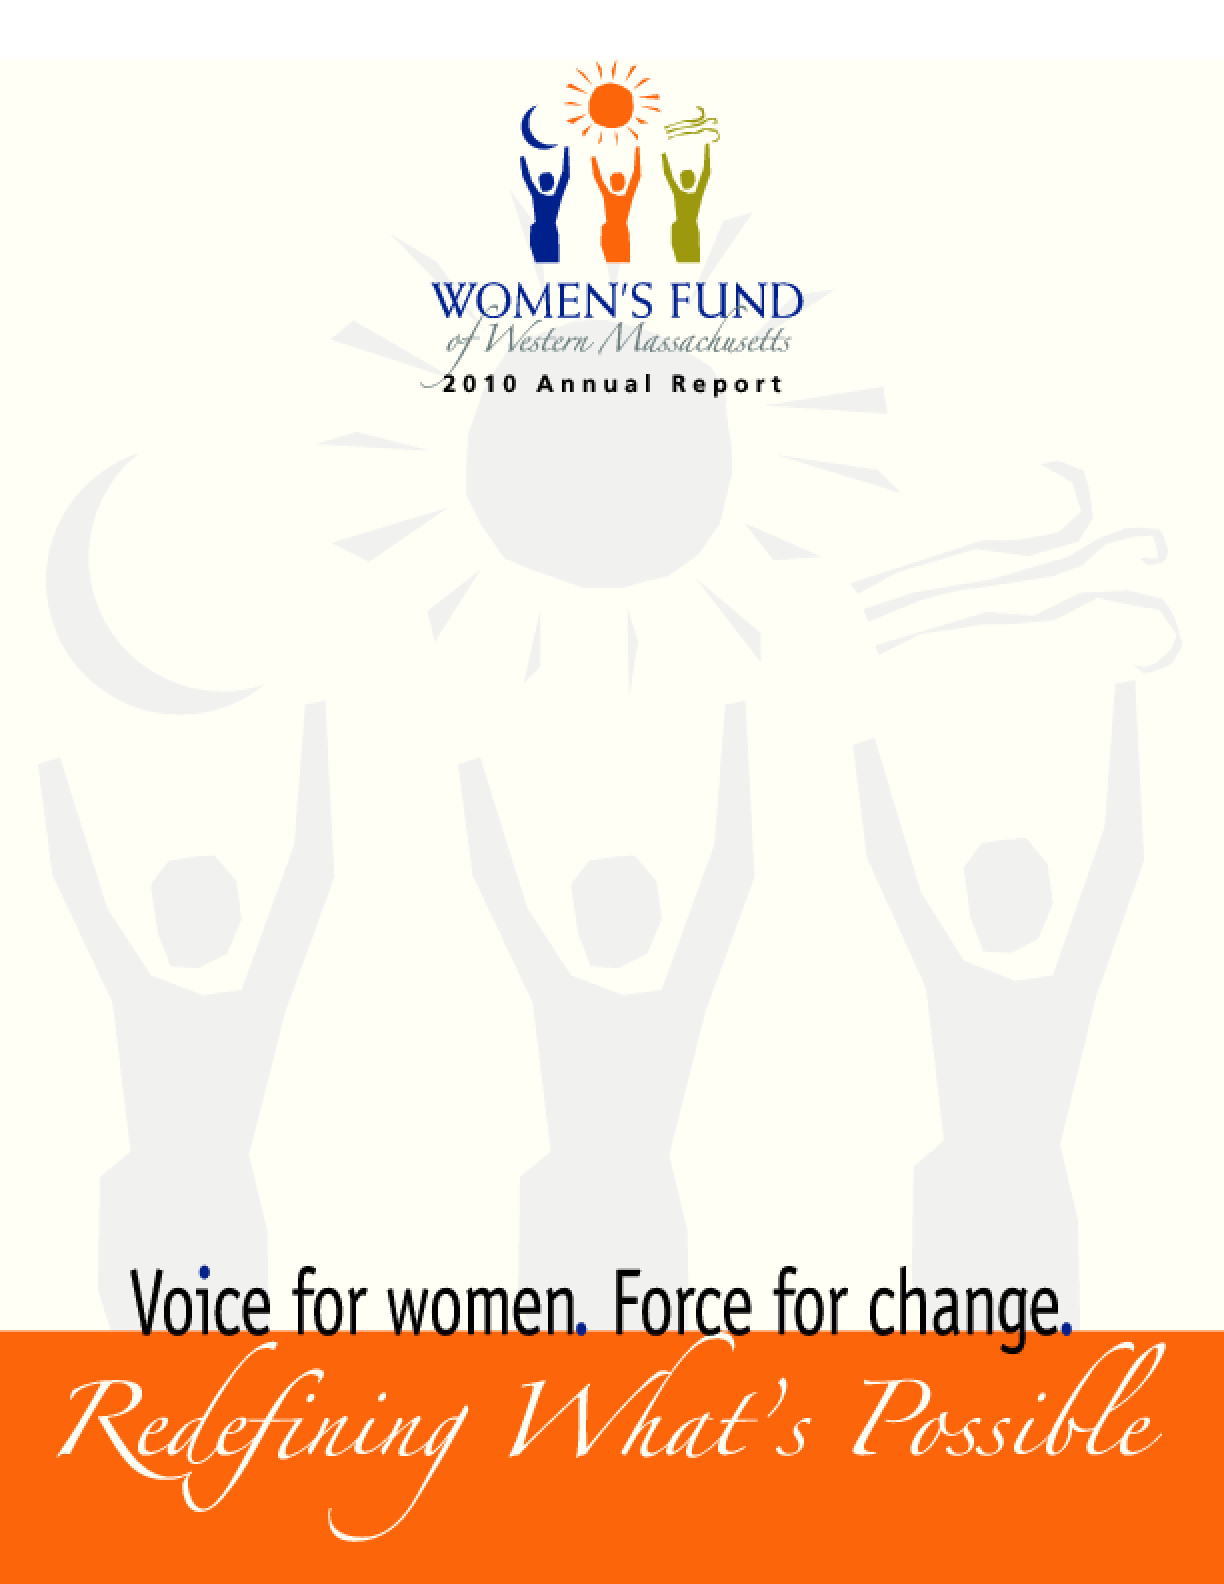 Women's Fund of Western Massachusetts, 2010 Annual Report